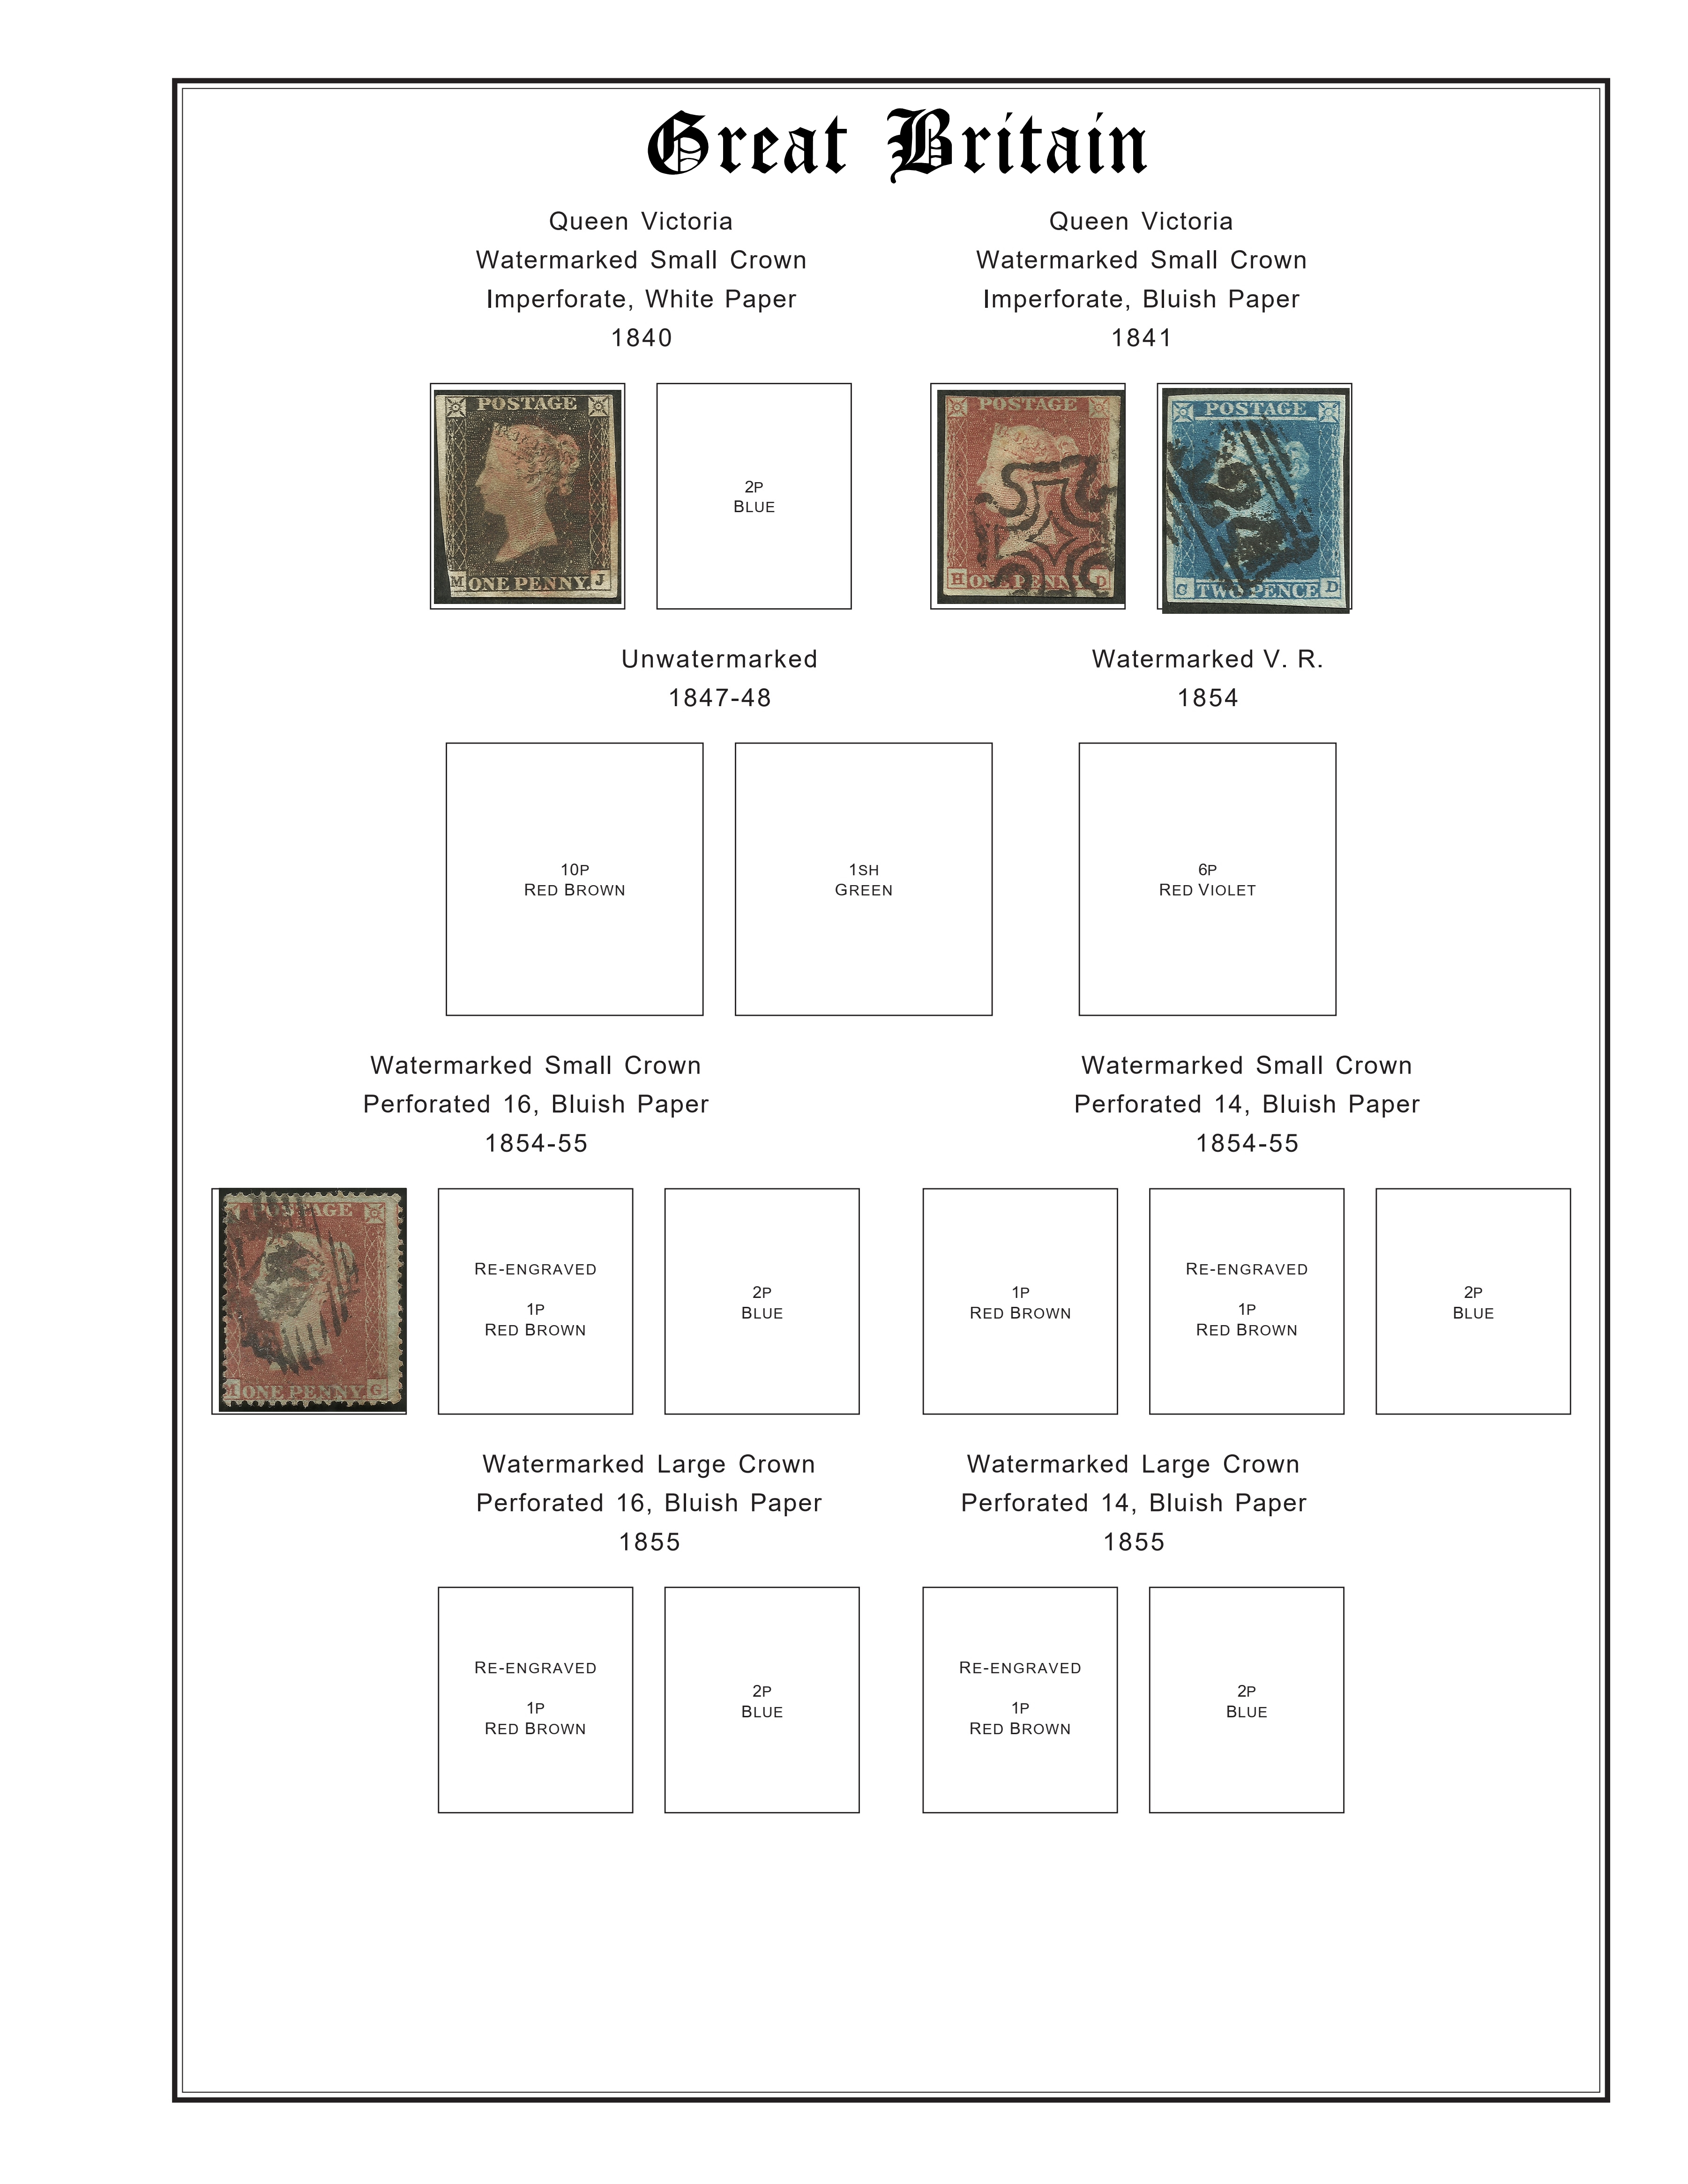 Examples of my slightly-modified, digital-only Steiner pages using scanned stamps from my collection. Scans by Mark Joseph Jochim, September 2018.